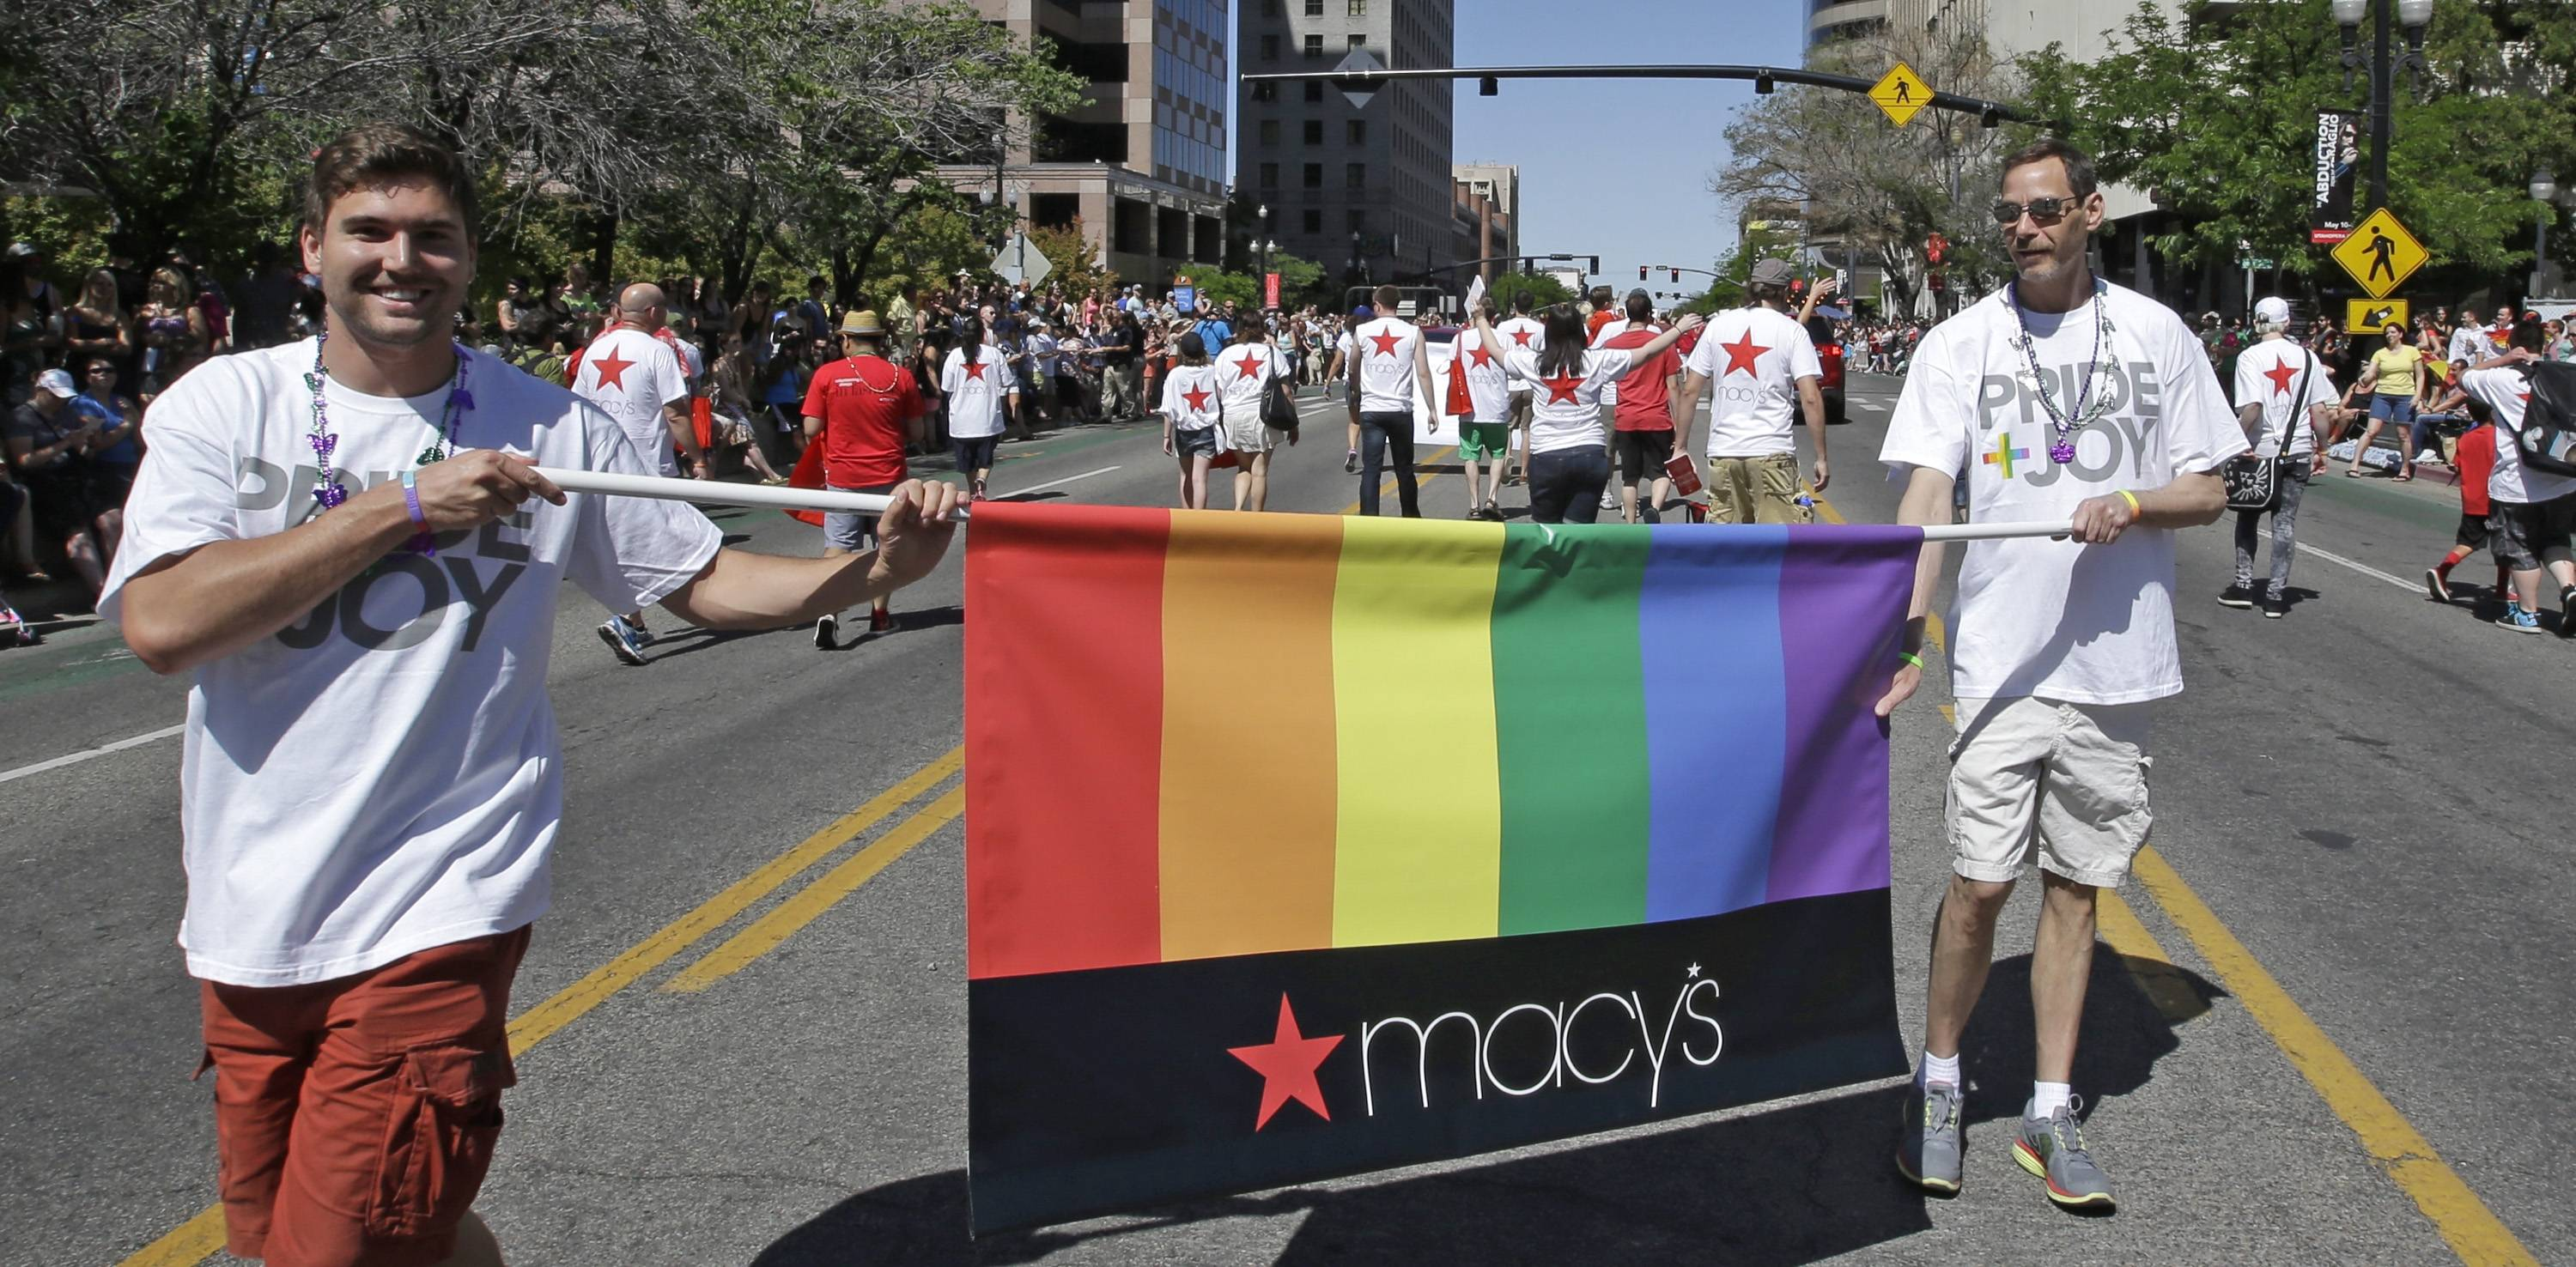 Workers carry a Macy's banner during the gay pride parade in Salt Lake City. Corporations have increased visibility this summer at gay pride parades around the country as same-sex marriage bans fall in the courts and polls show greater public acceptance of gay marriage.